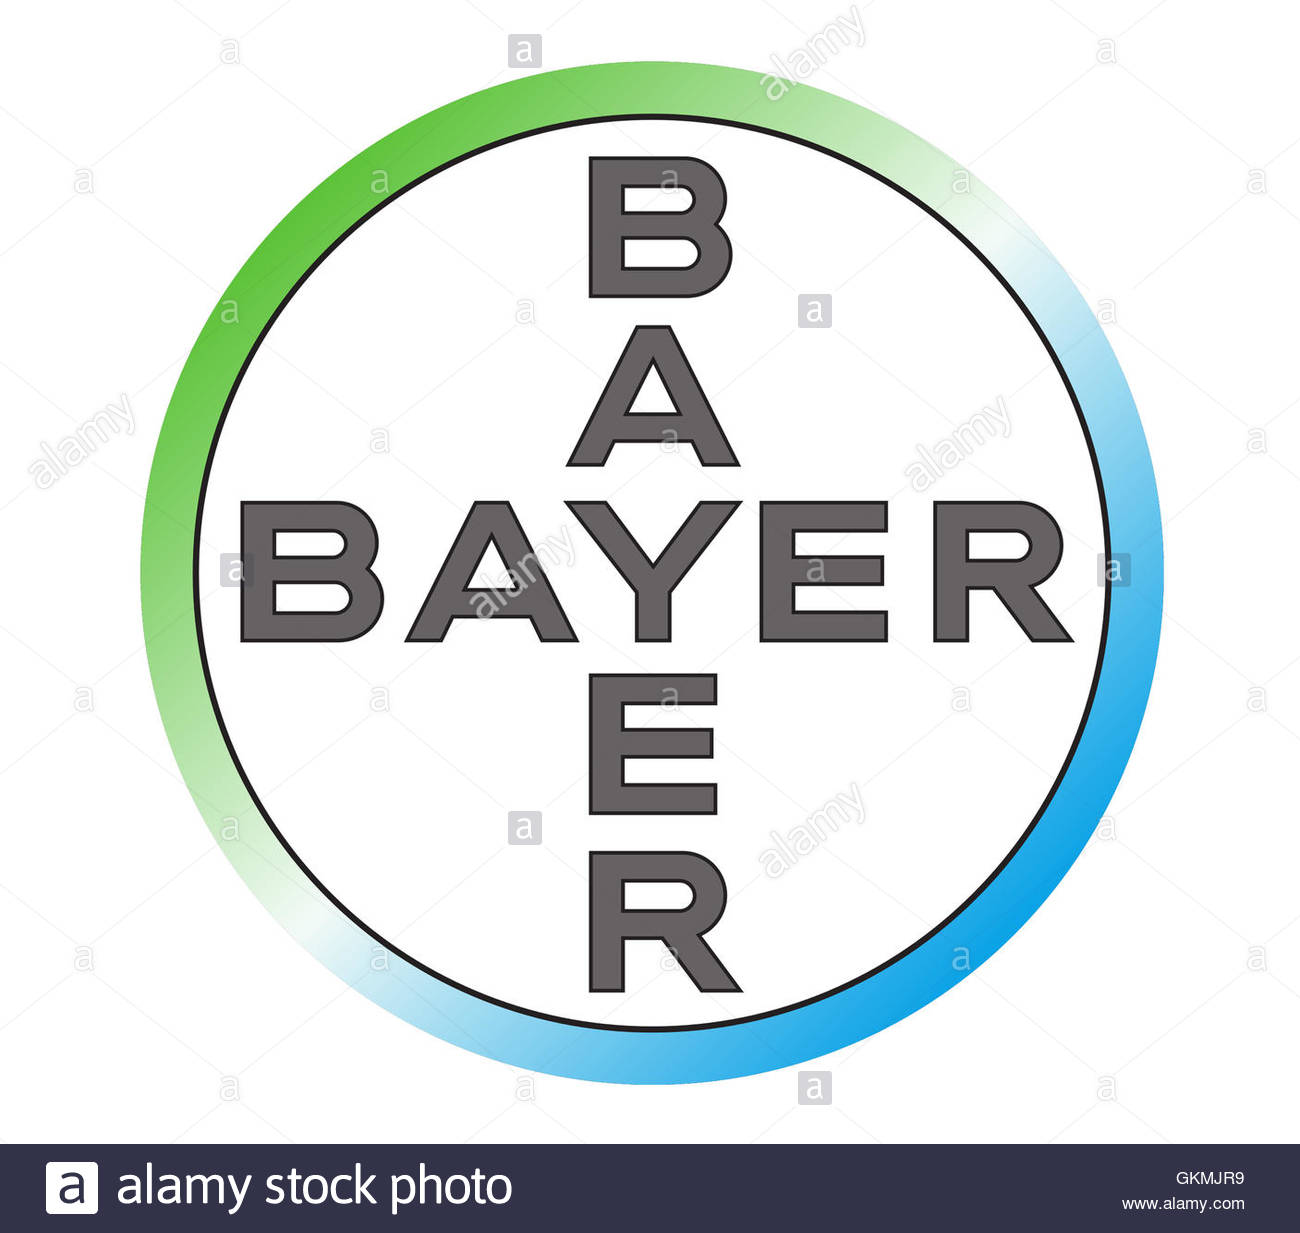 Bayer Ag Cut Out Stock Images Pictures Alamy